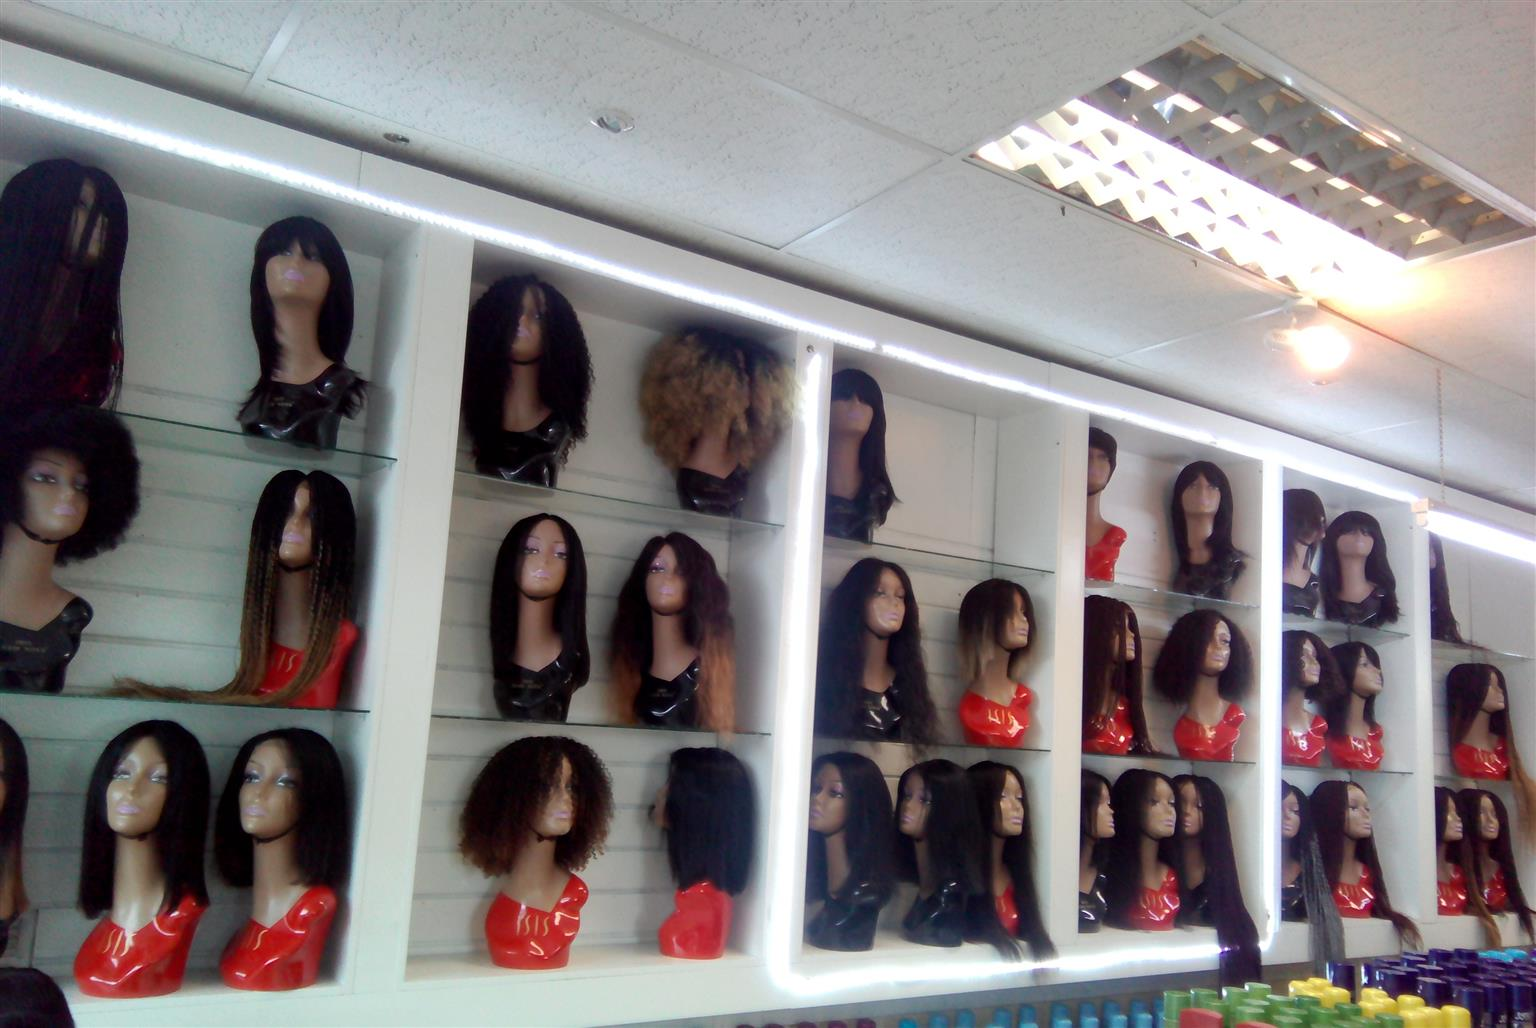 "HUMAN HAIR WIGS -BOB 10"" WIG :R899  AND MORE WIGS AND WEAVES IN SPECIAL AT 52 MAIN ROAD CLAREMONT OPPOSITE PICK N PAY  0739006325"